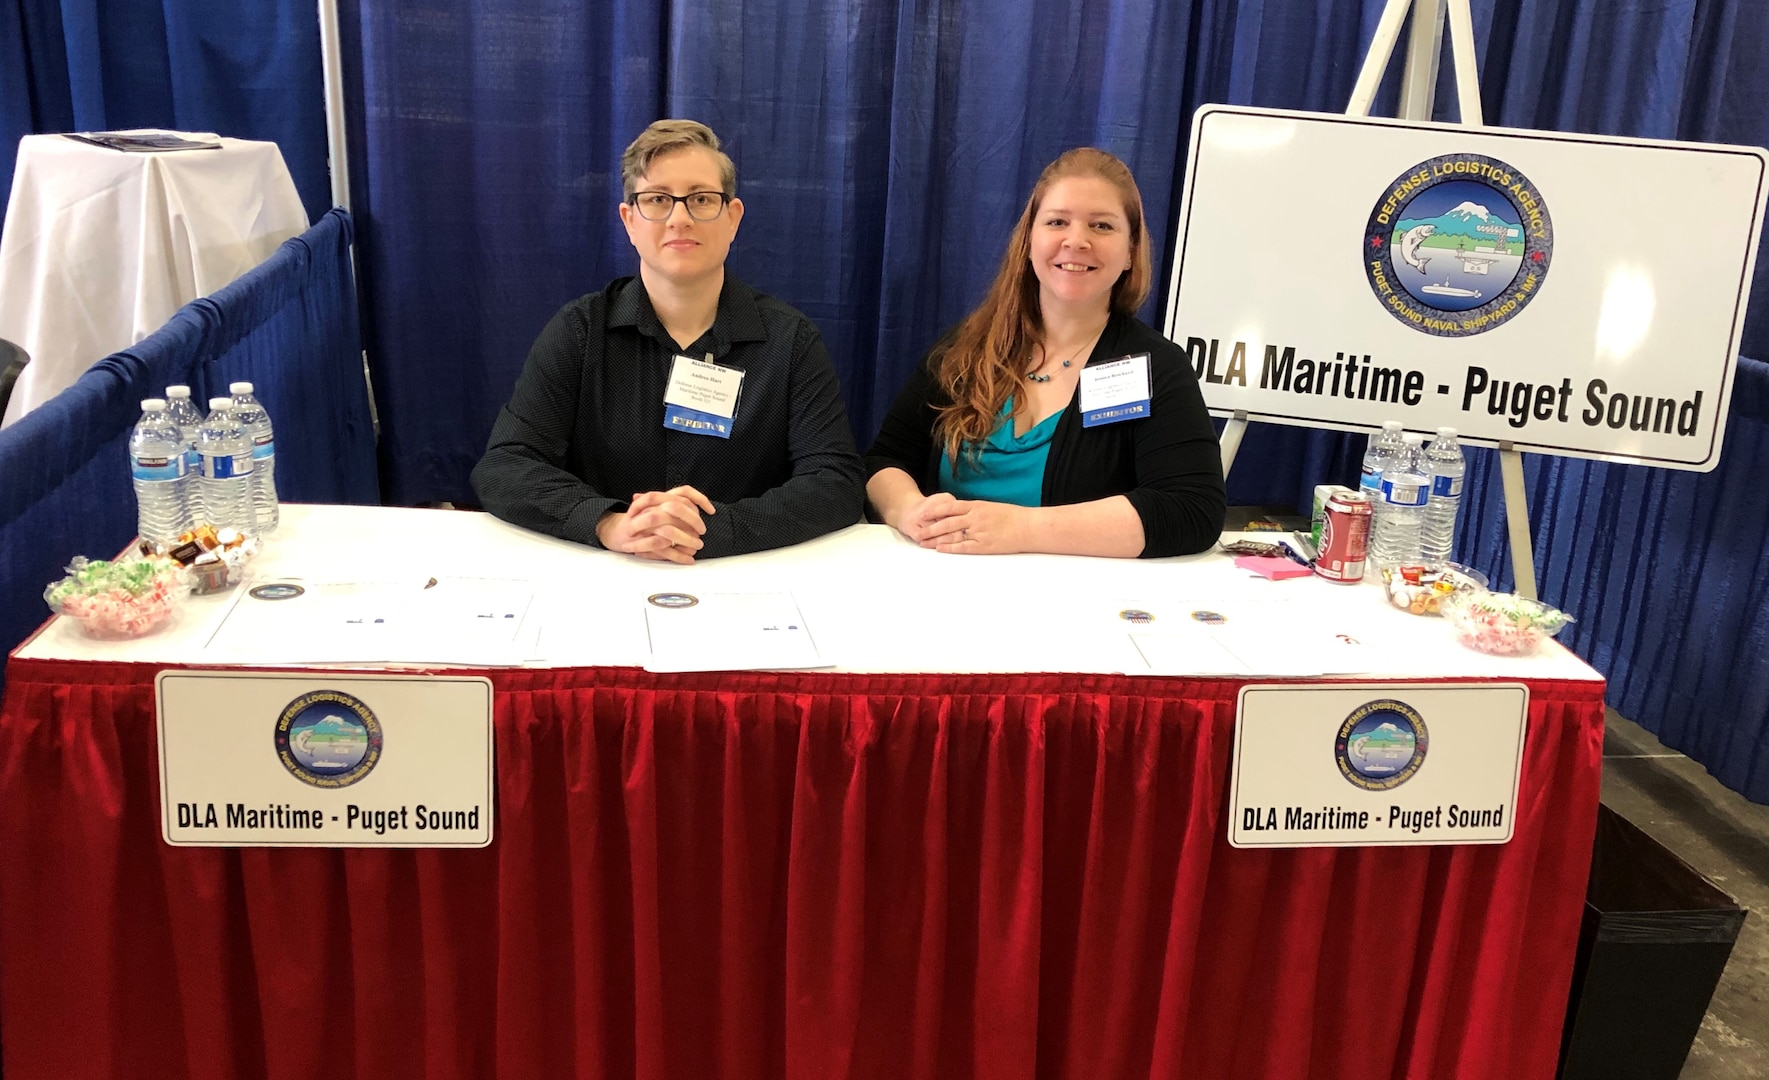 Two female associates sitting behind a booth.